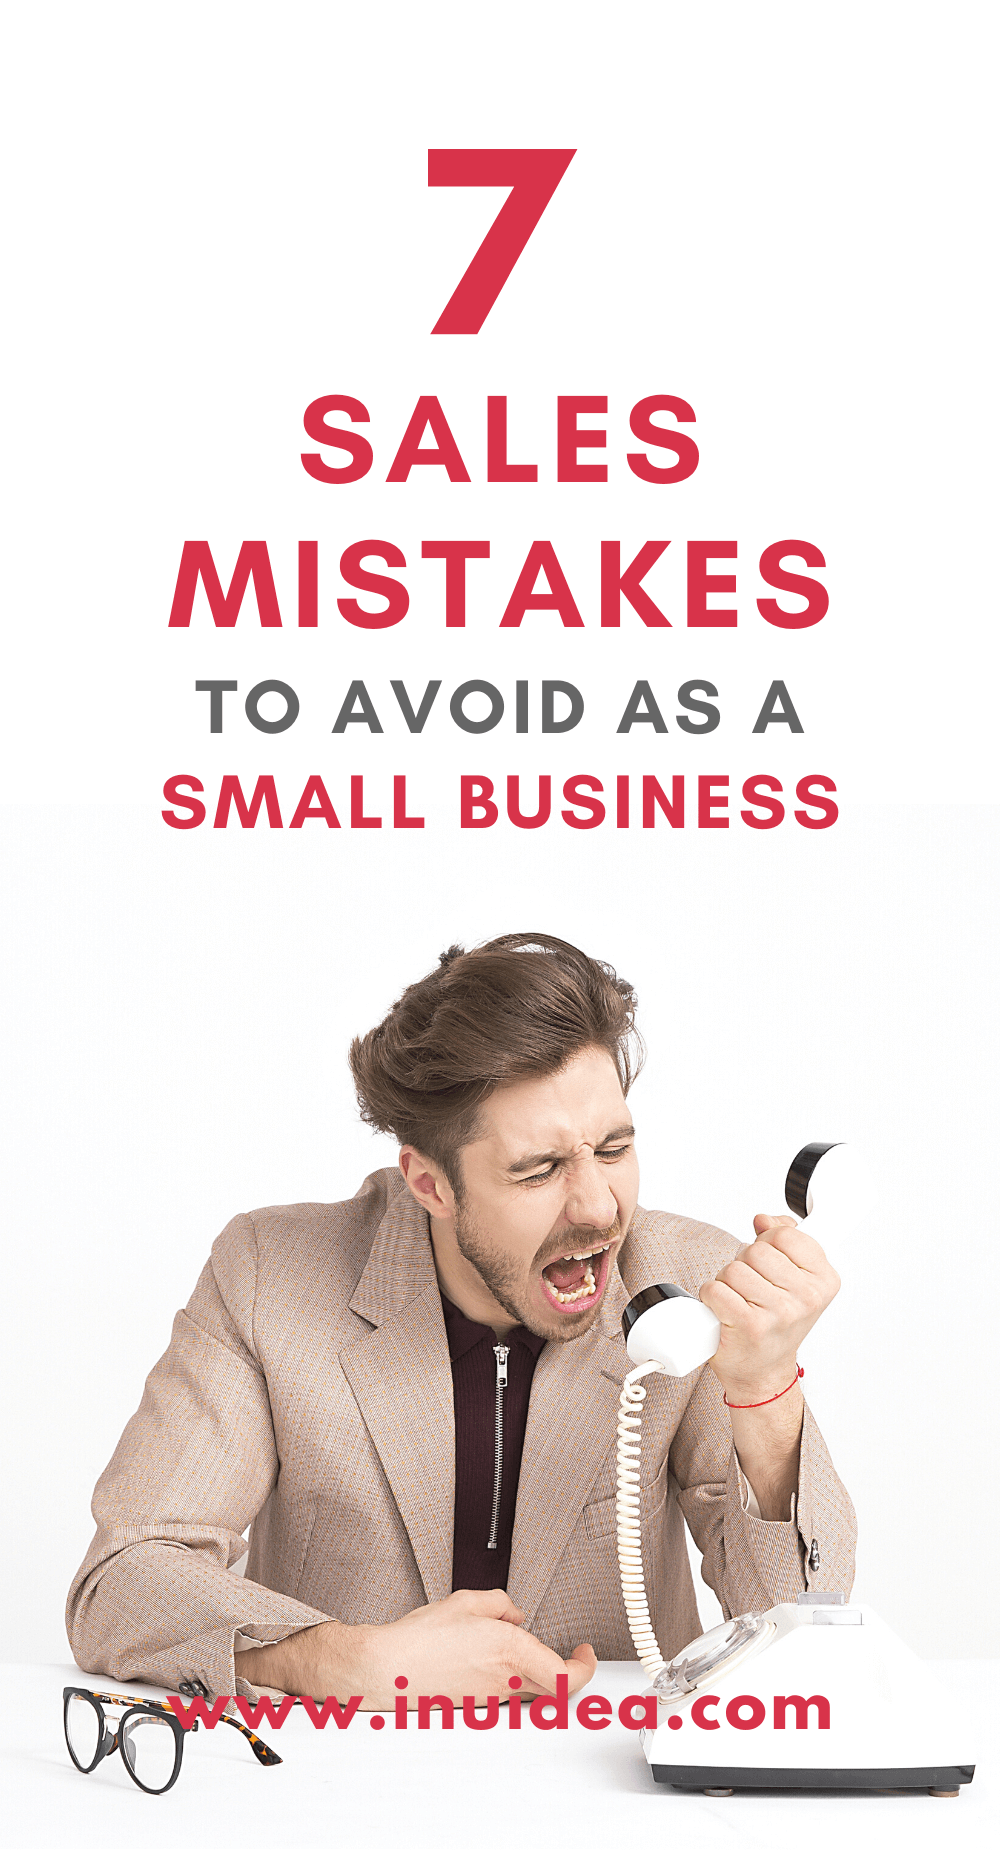 Sales Mistakes to Avoid as a Small Business